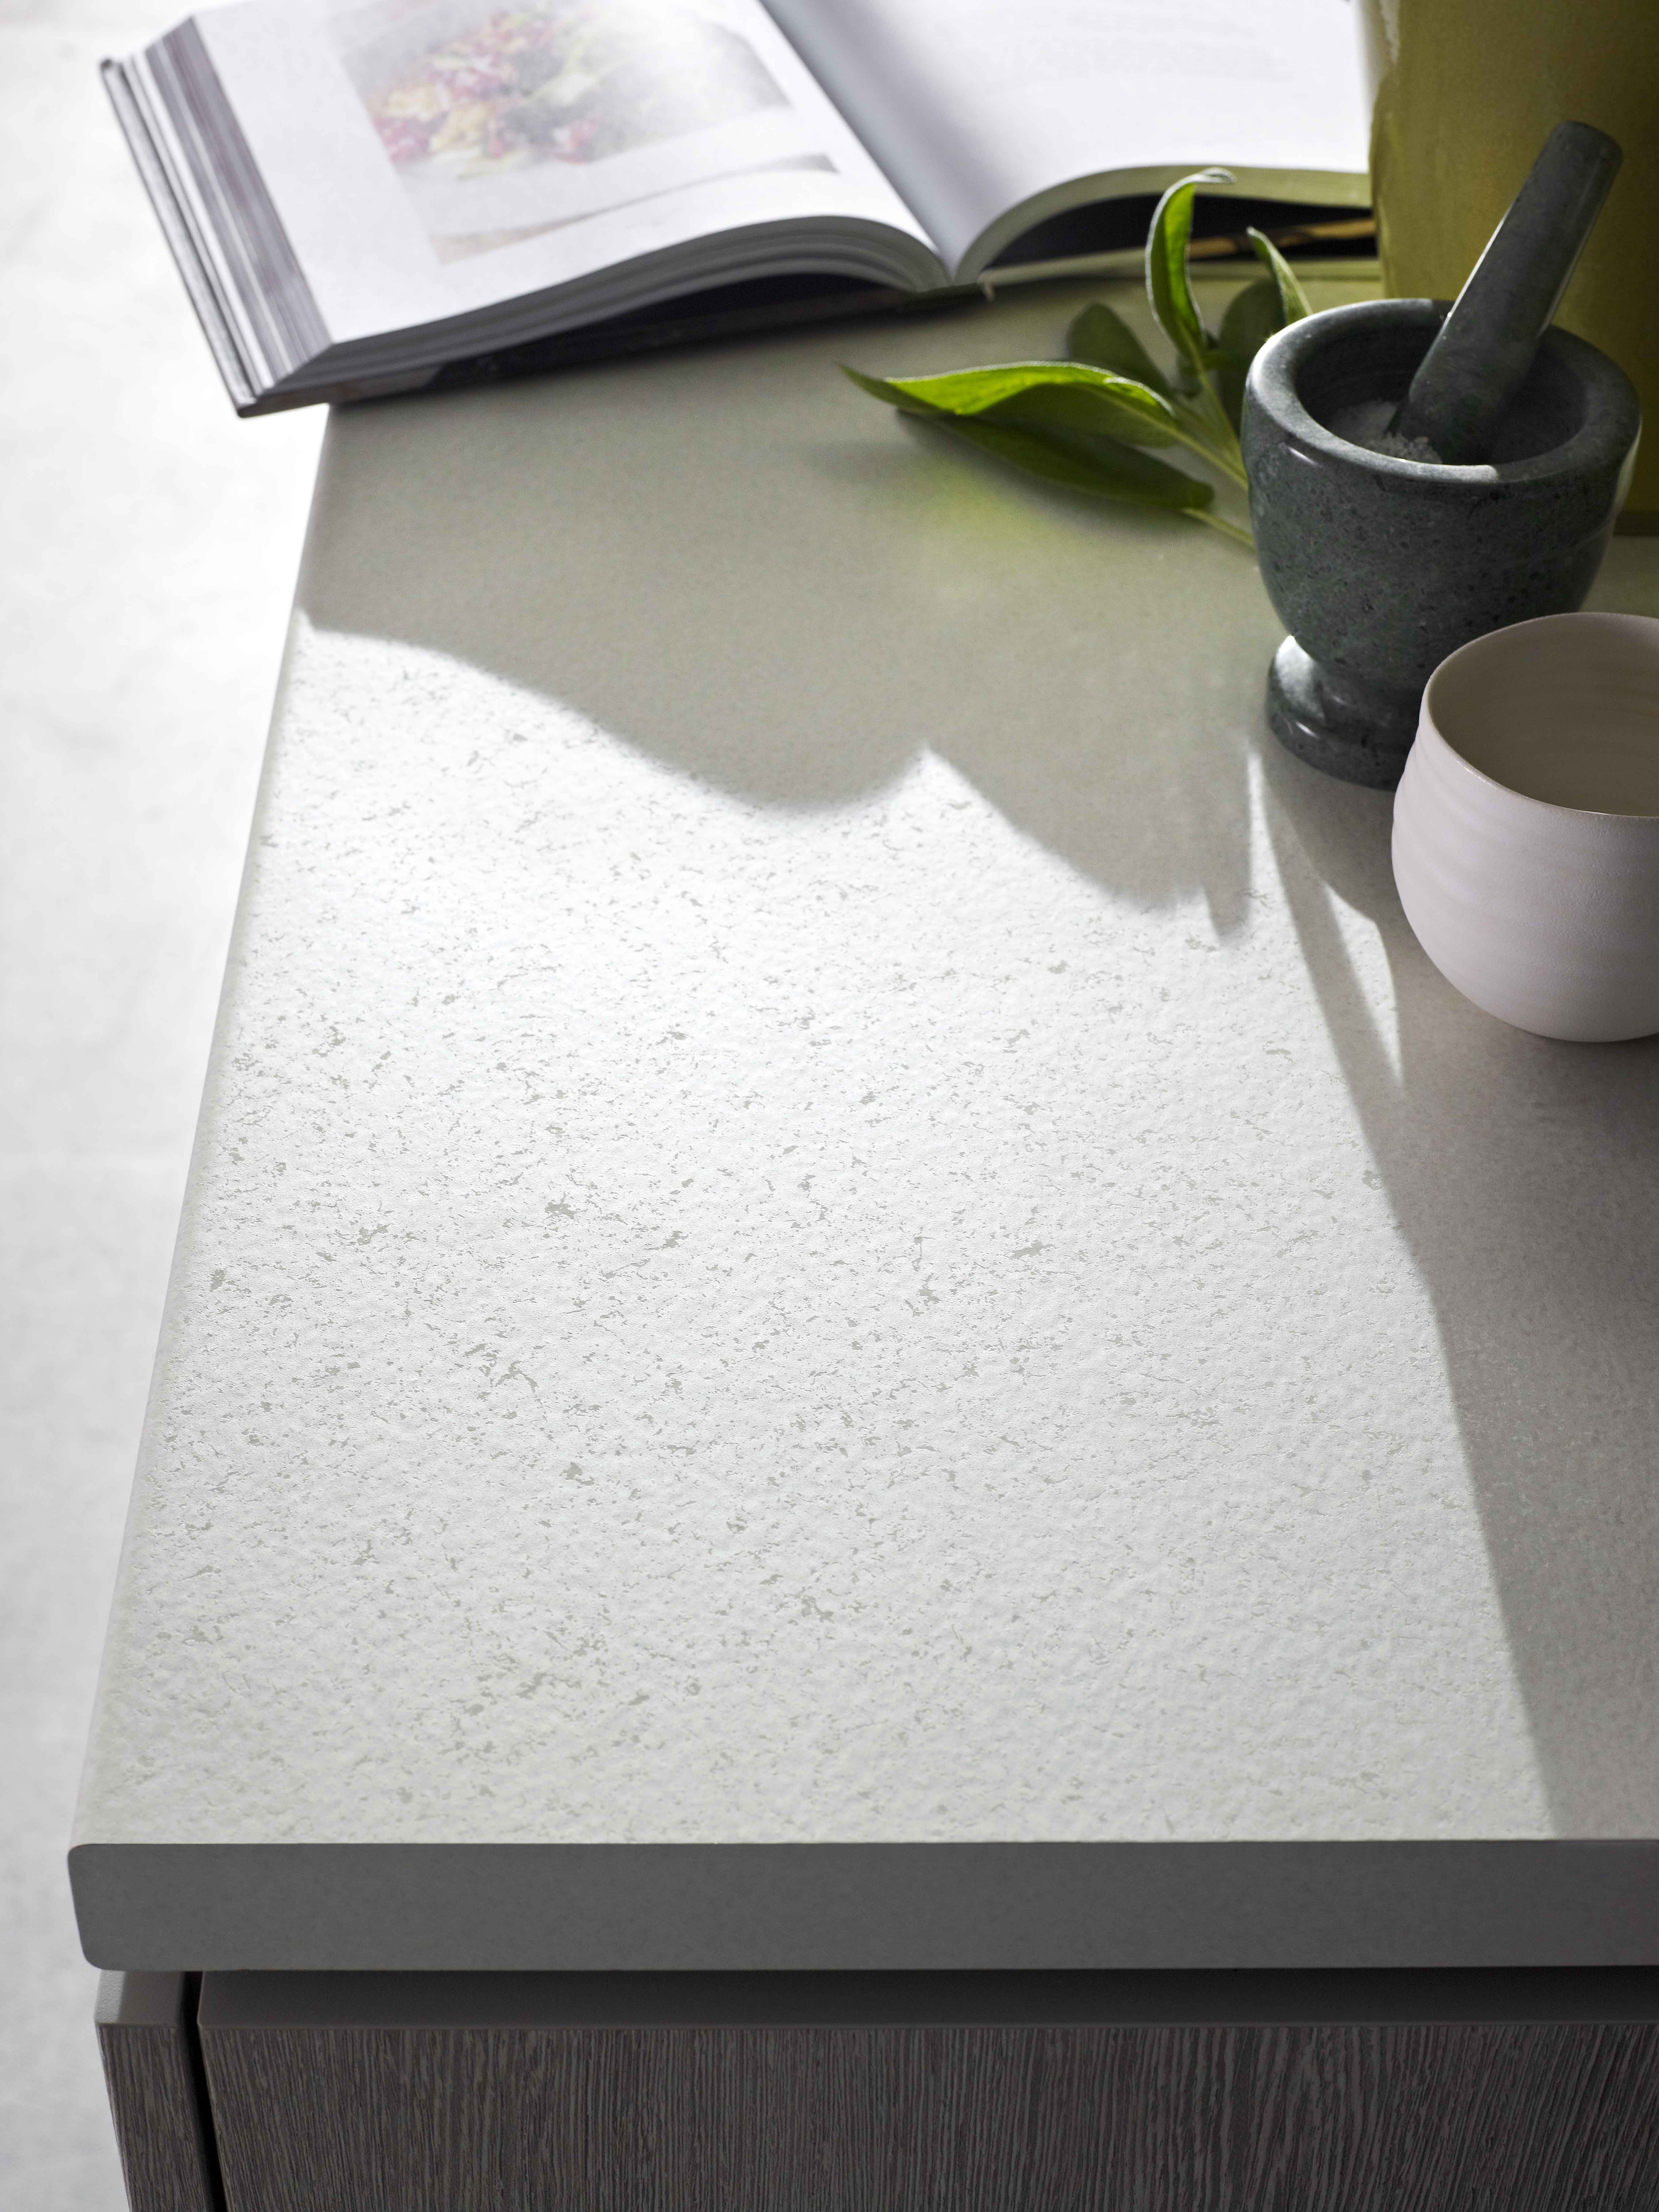 Benchtop Laminex Fresh Snow Spark Finish And Base Cupboard